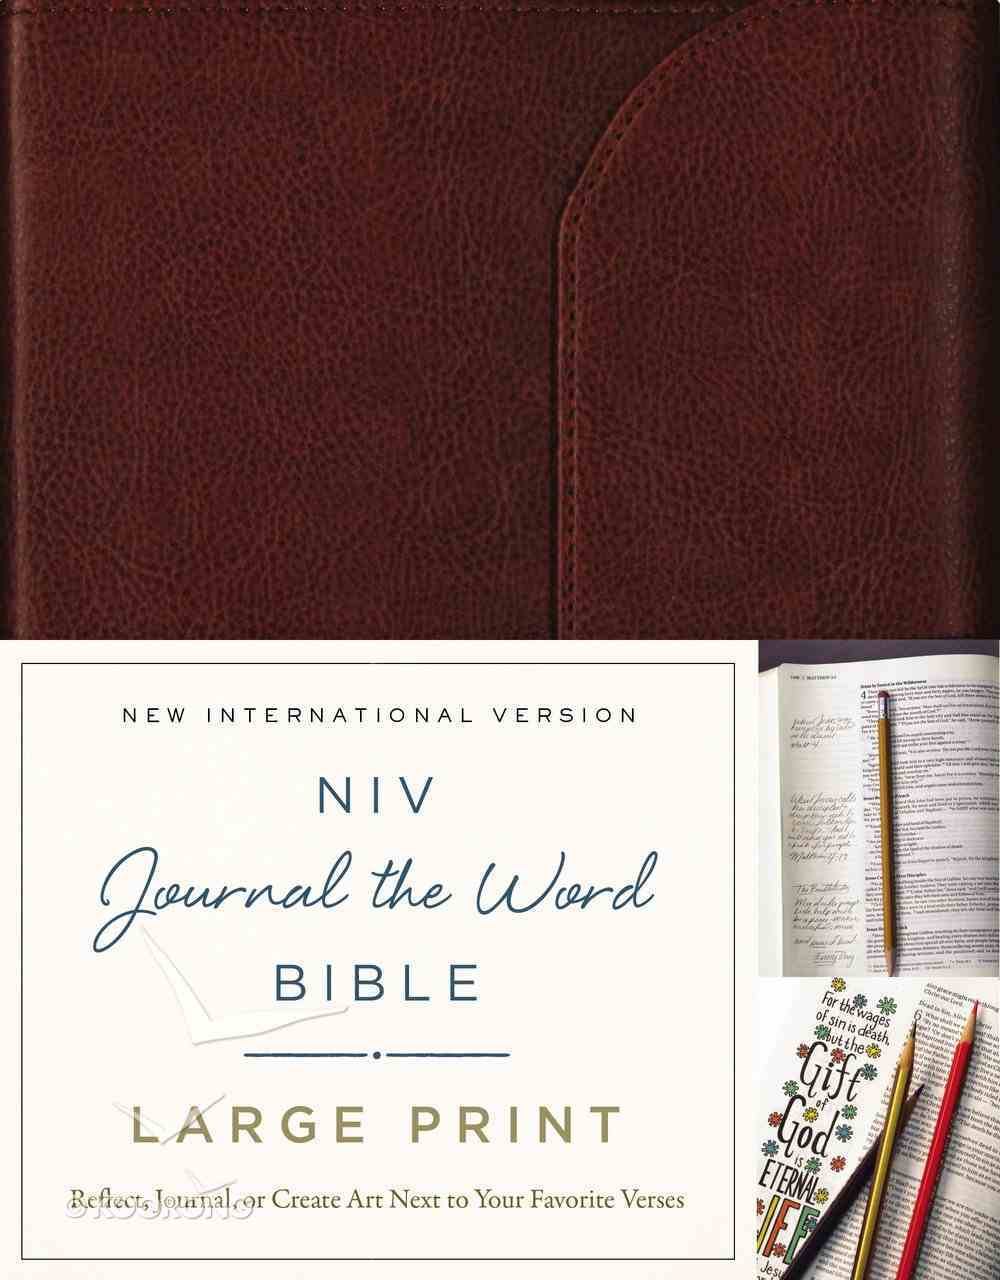 NIV Journal the Word Bible Large Print Brown (Black Letter Edition) Genuine Leather